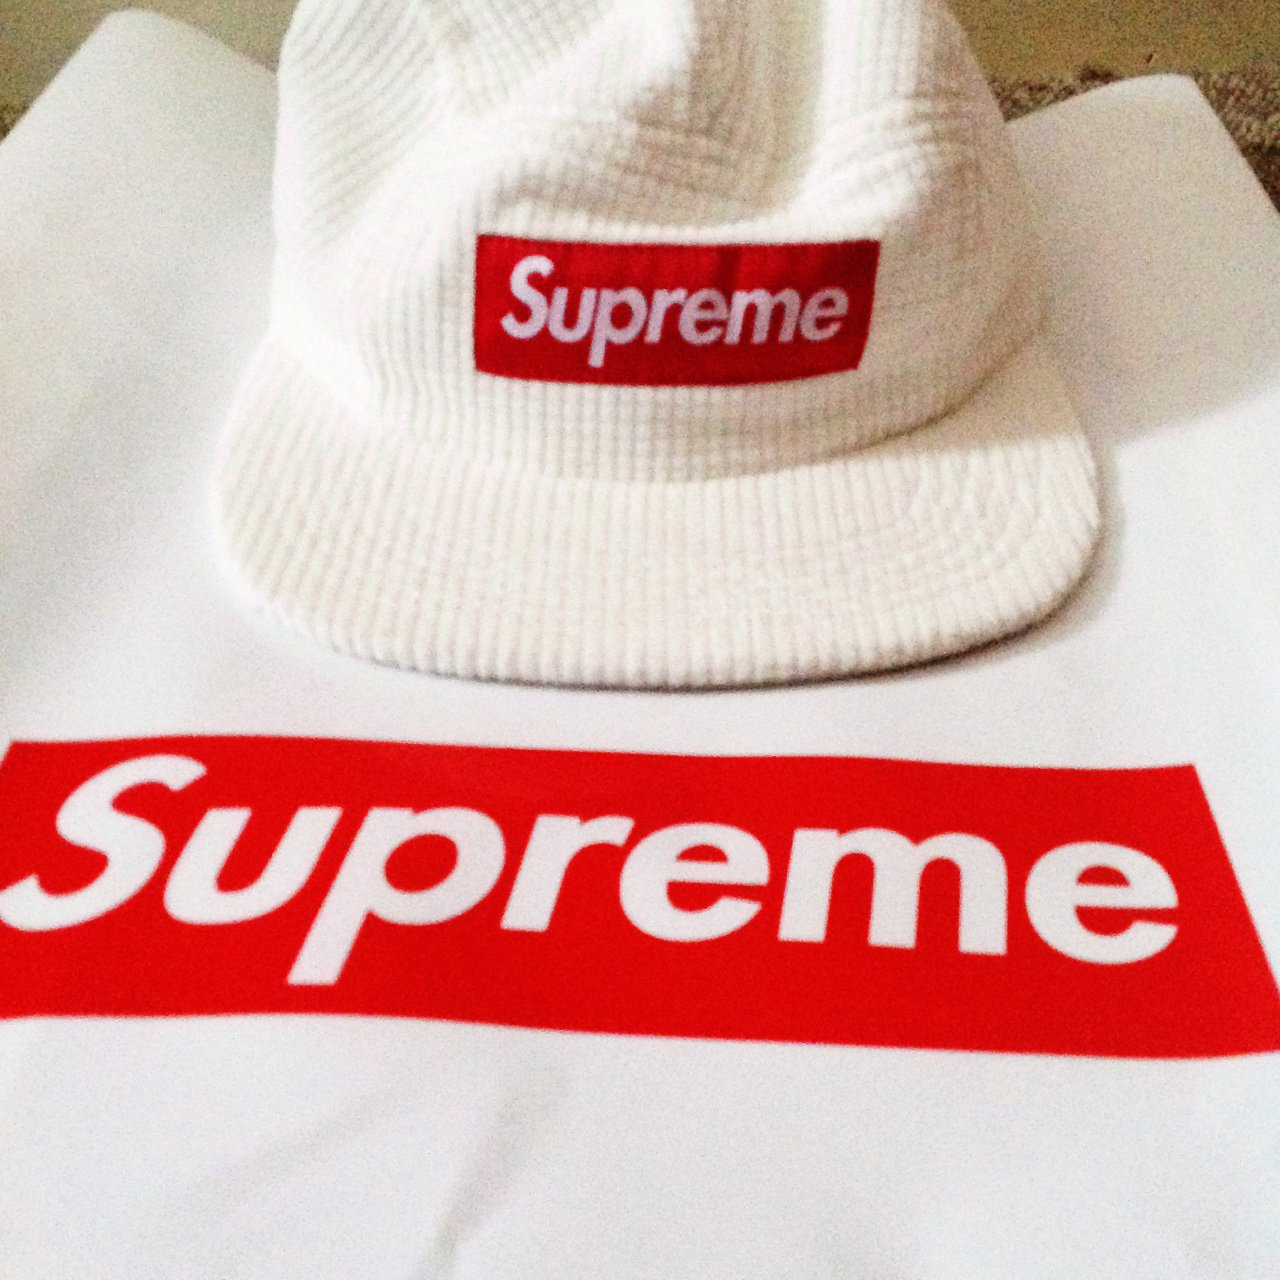 3f173ae641d Supreme hat🔥 (White) Waffle Conduroy Camp Deadstock Fits in - Depop